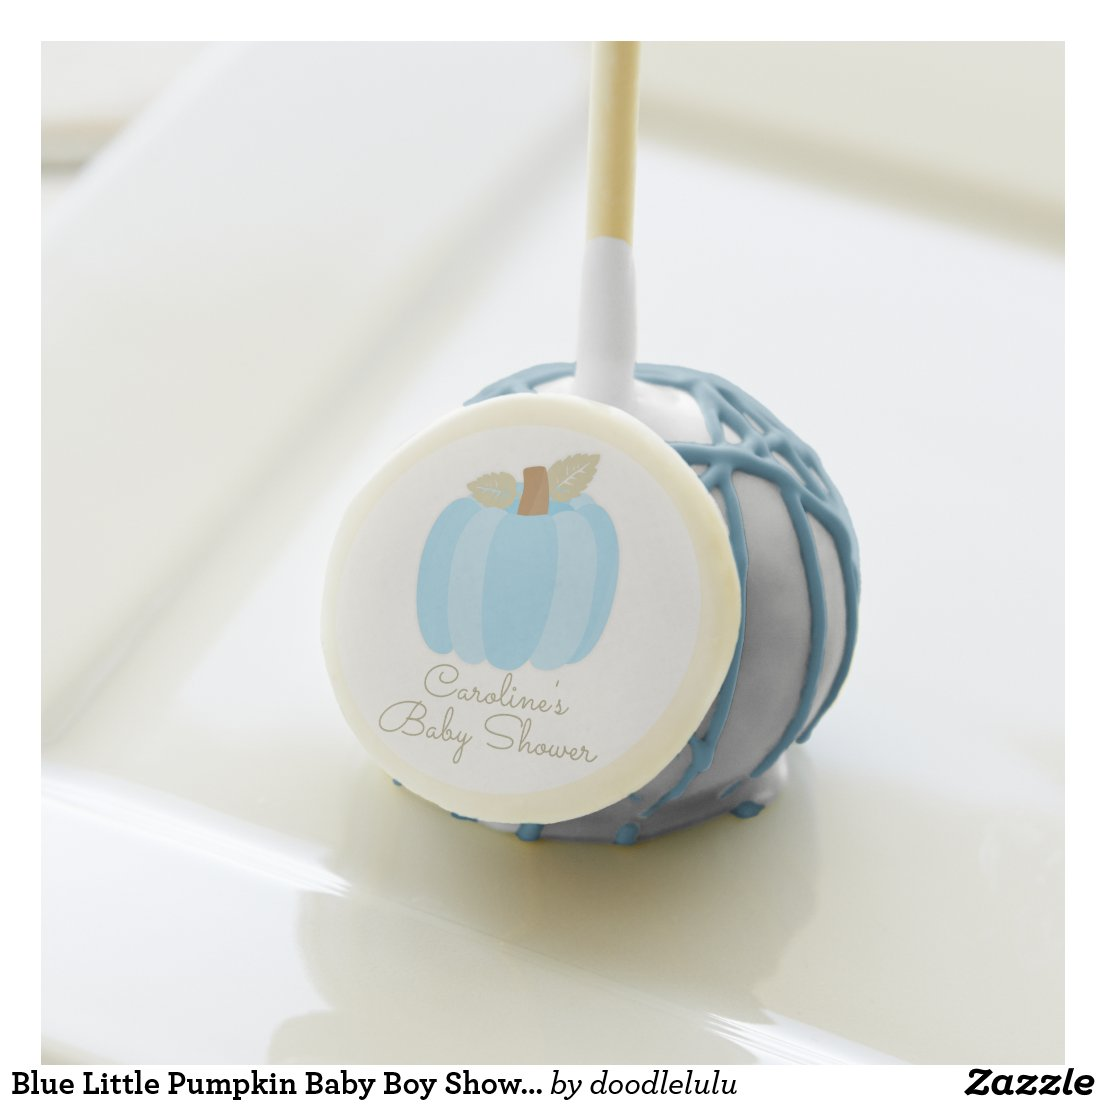 Blue Little Pumpkin Baby Boy Shower Cake Pops